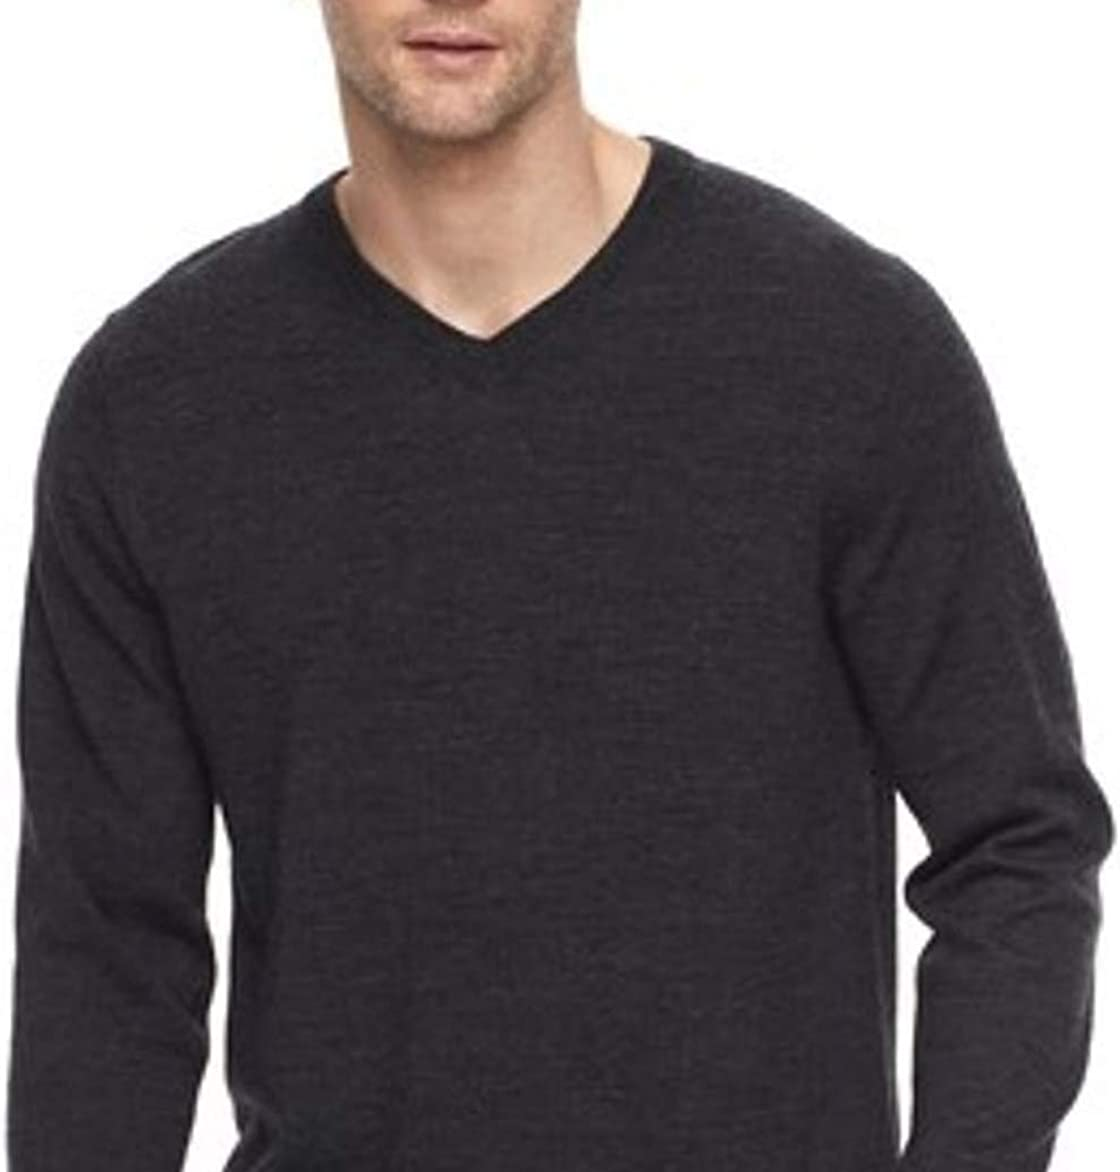 Liz Claiborne Apt 9 Mens Classic Fit Merino Wool Blend V-Neck Sweater Charcoal